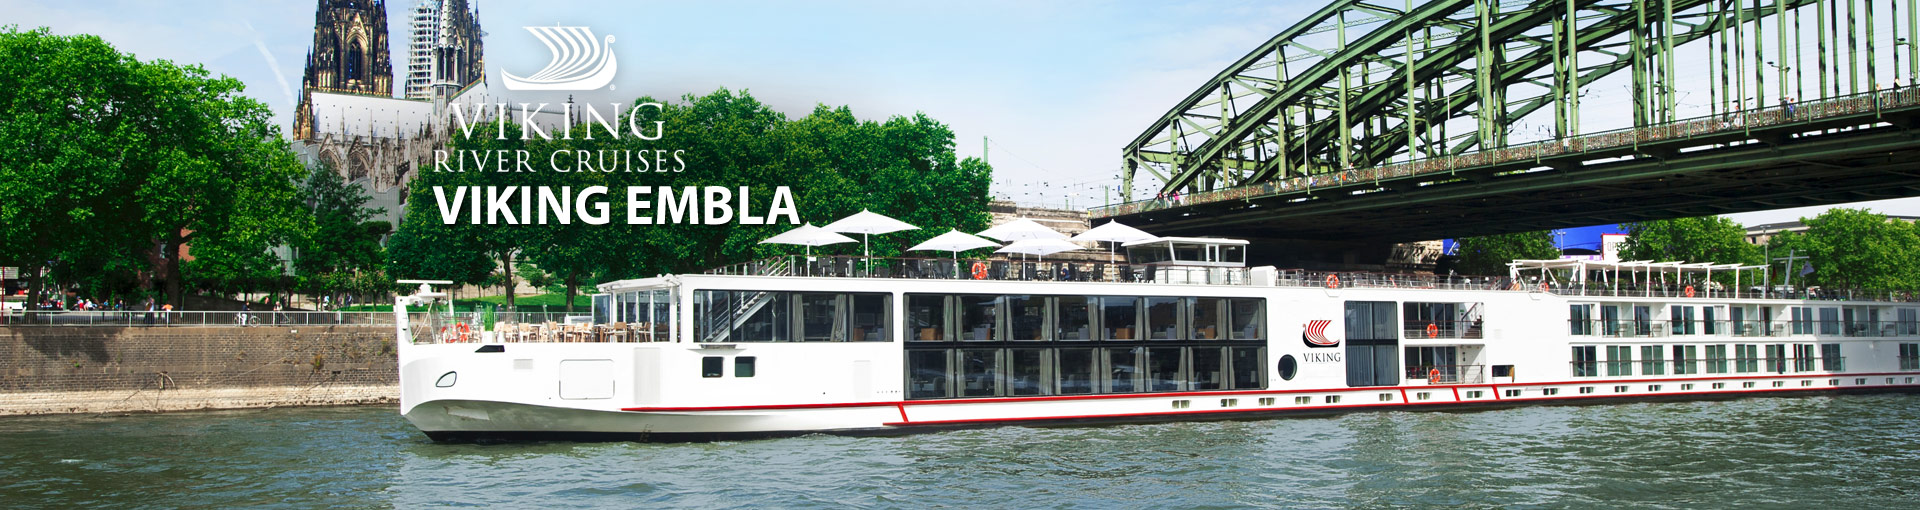 Viking Rivers Viking Embla river cruise ship